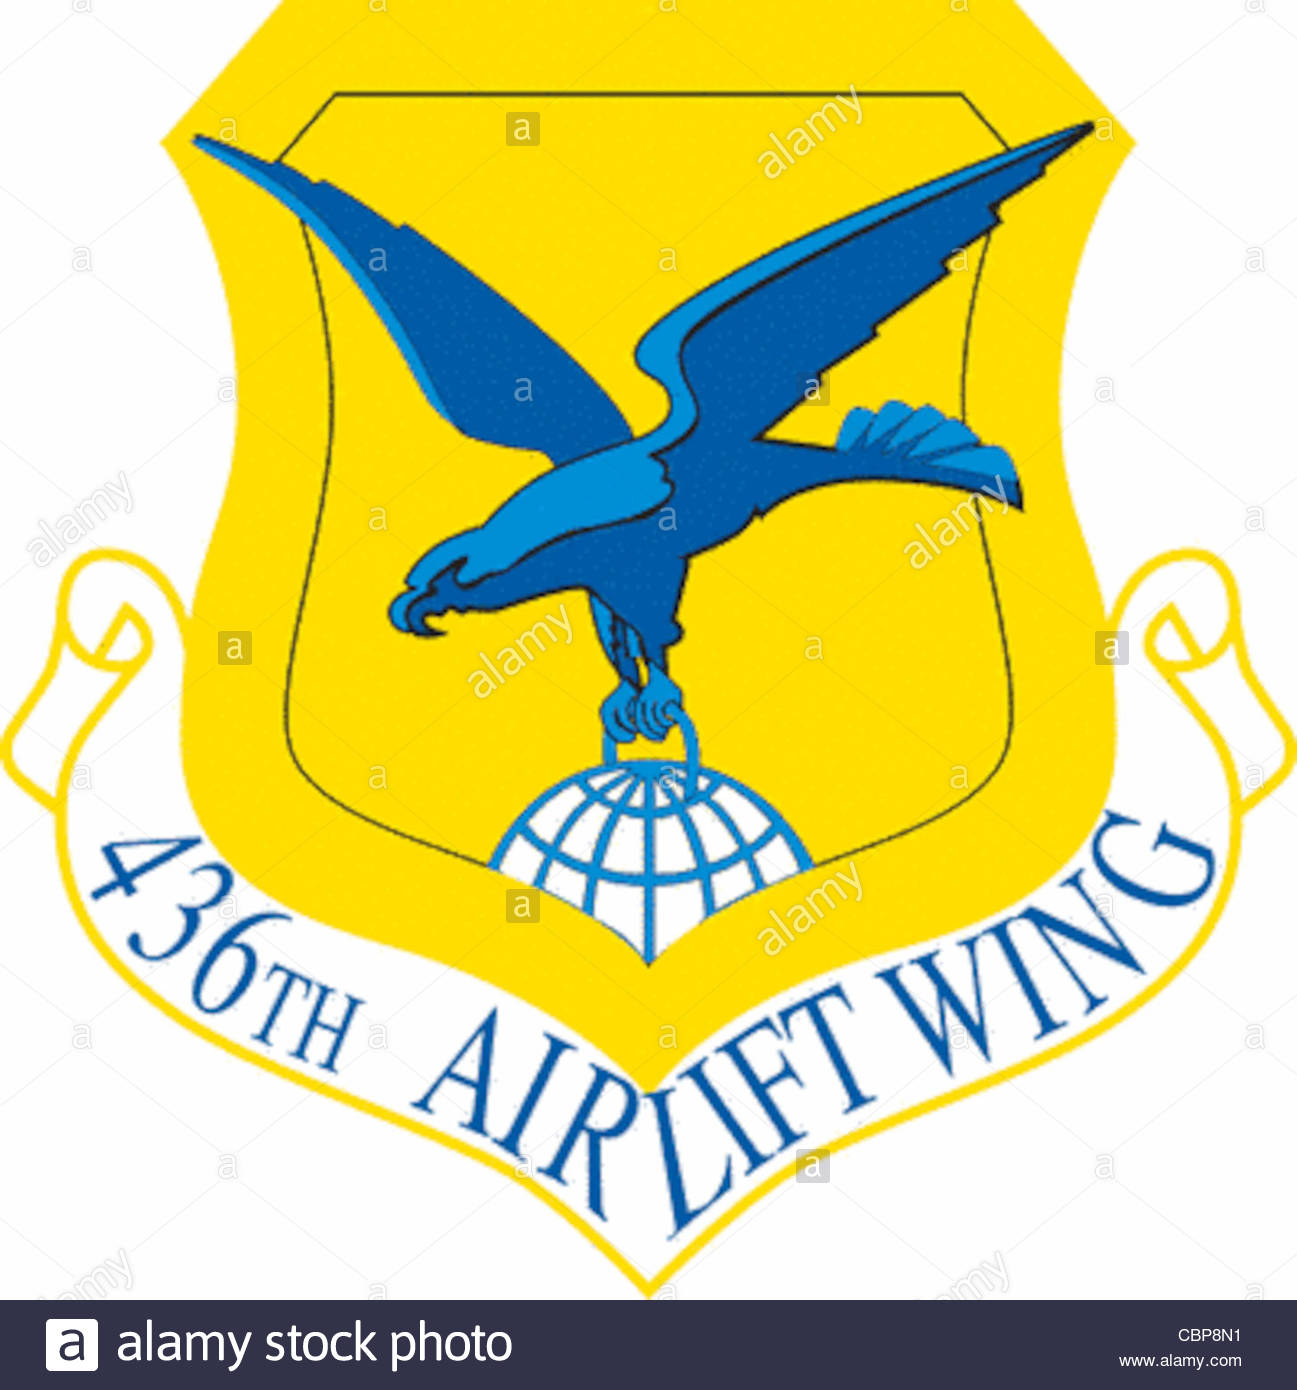 436th Airlift Wing Clip Art Stock Photo, Royalty Free Image.